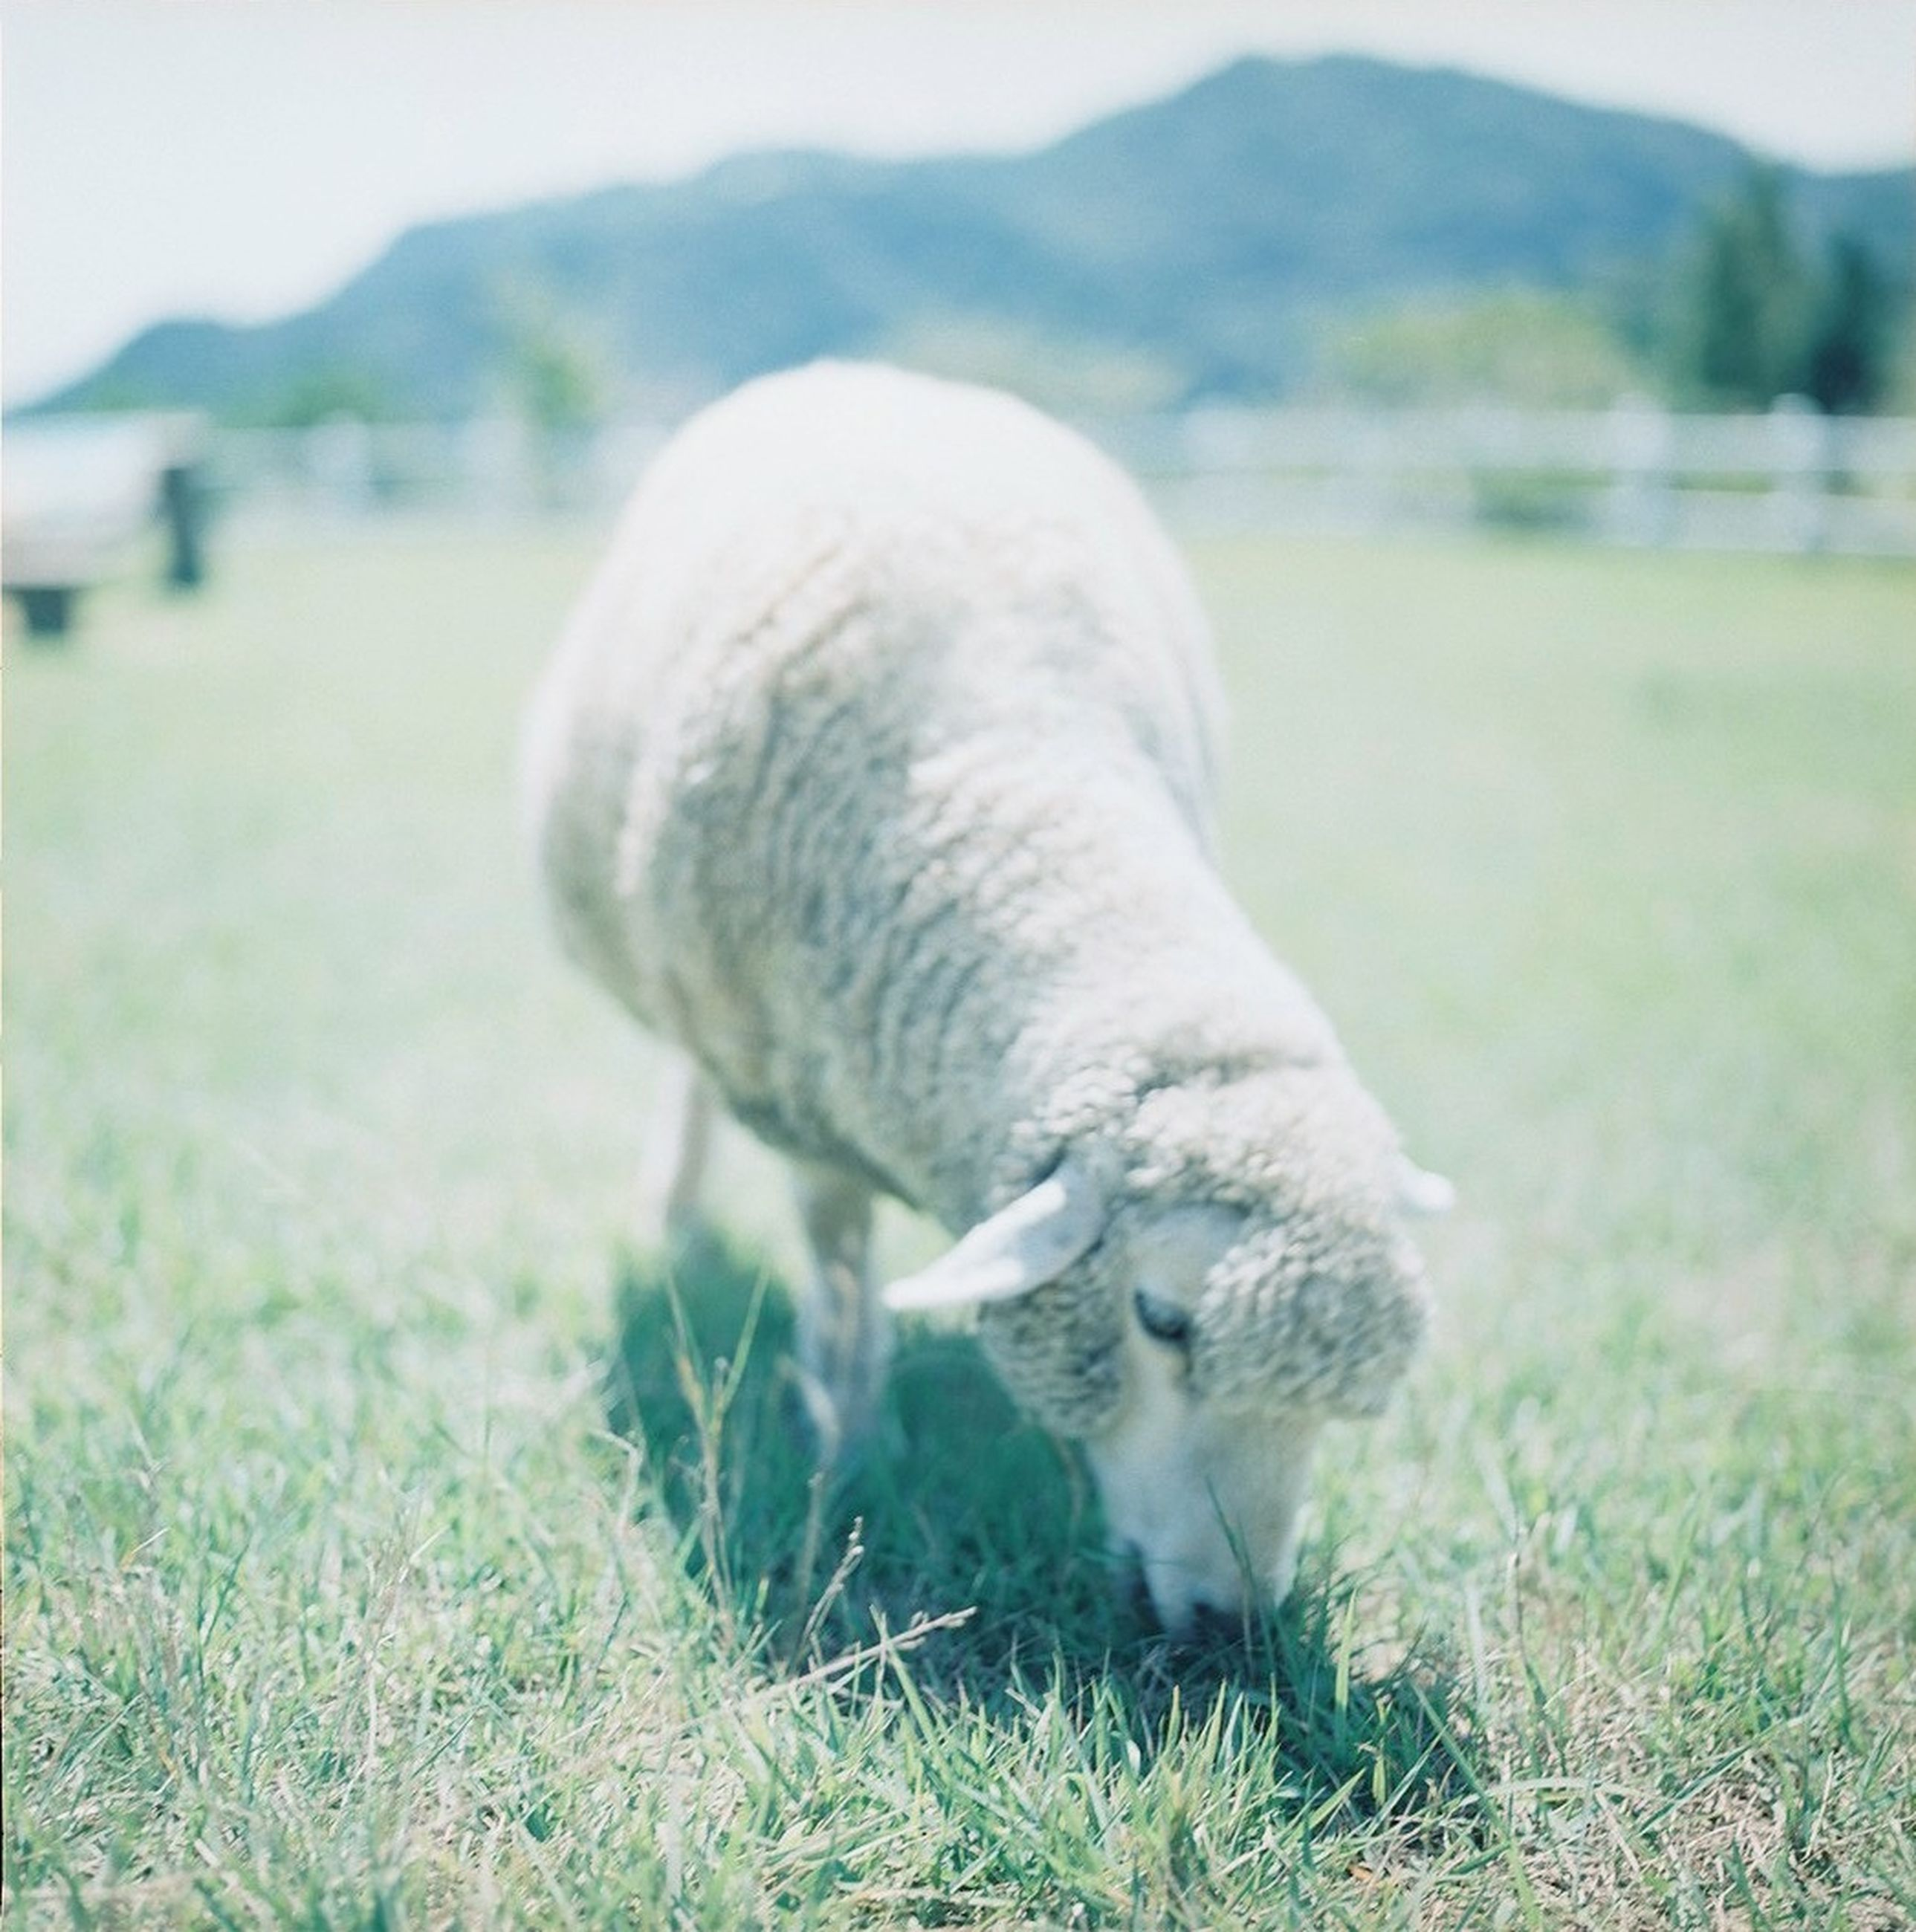 animal themes, grass, field, animals in the wild, sheep, wildlife, focus on foreground, one animal, grassy, mammal, nature, two animals, white color, livestock, close-up, side view, outdoors, young animal, day, relaxation